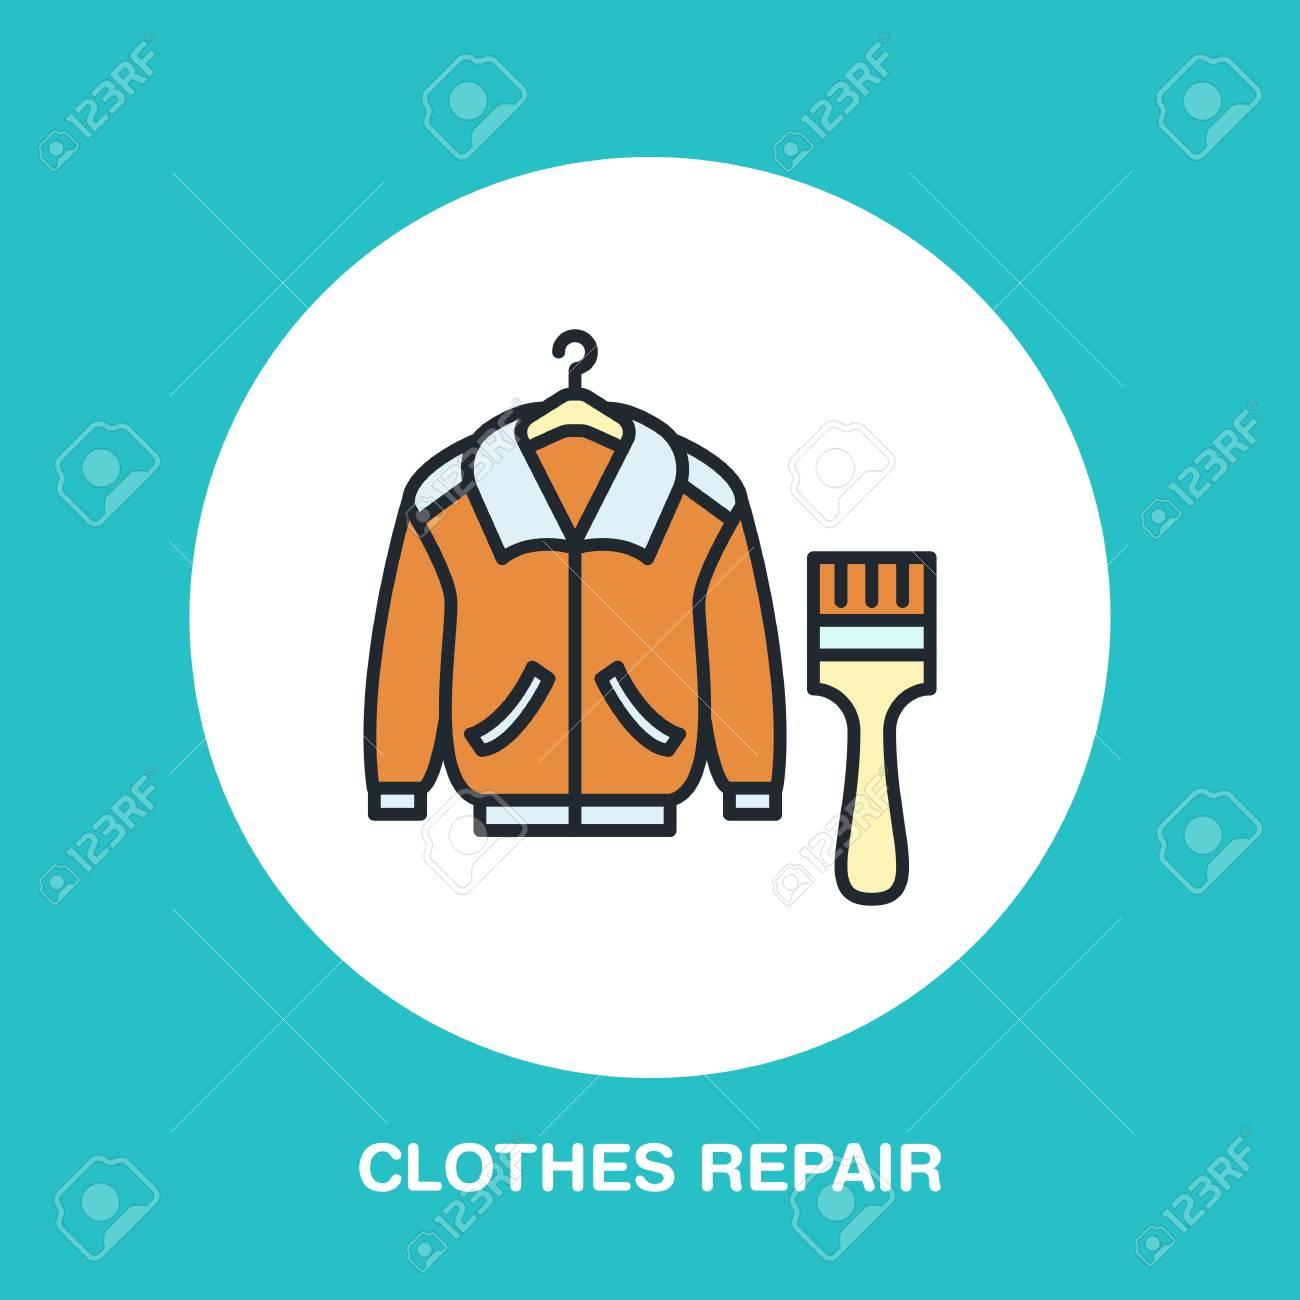 Clothing Repair Line Icon Logo Dry Cleaning Service Flat Sign